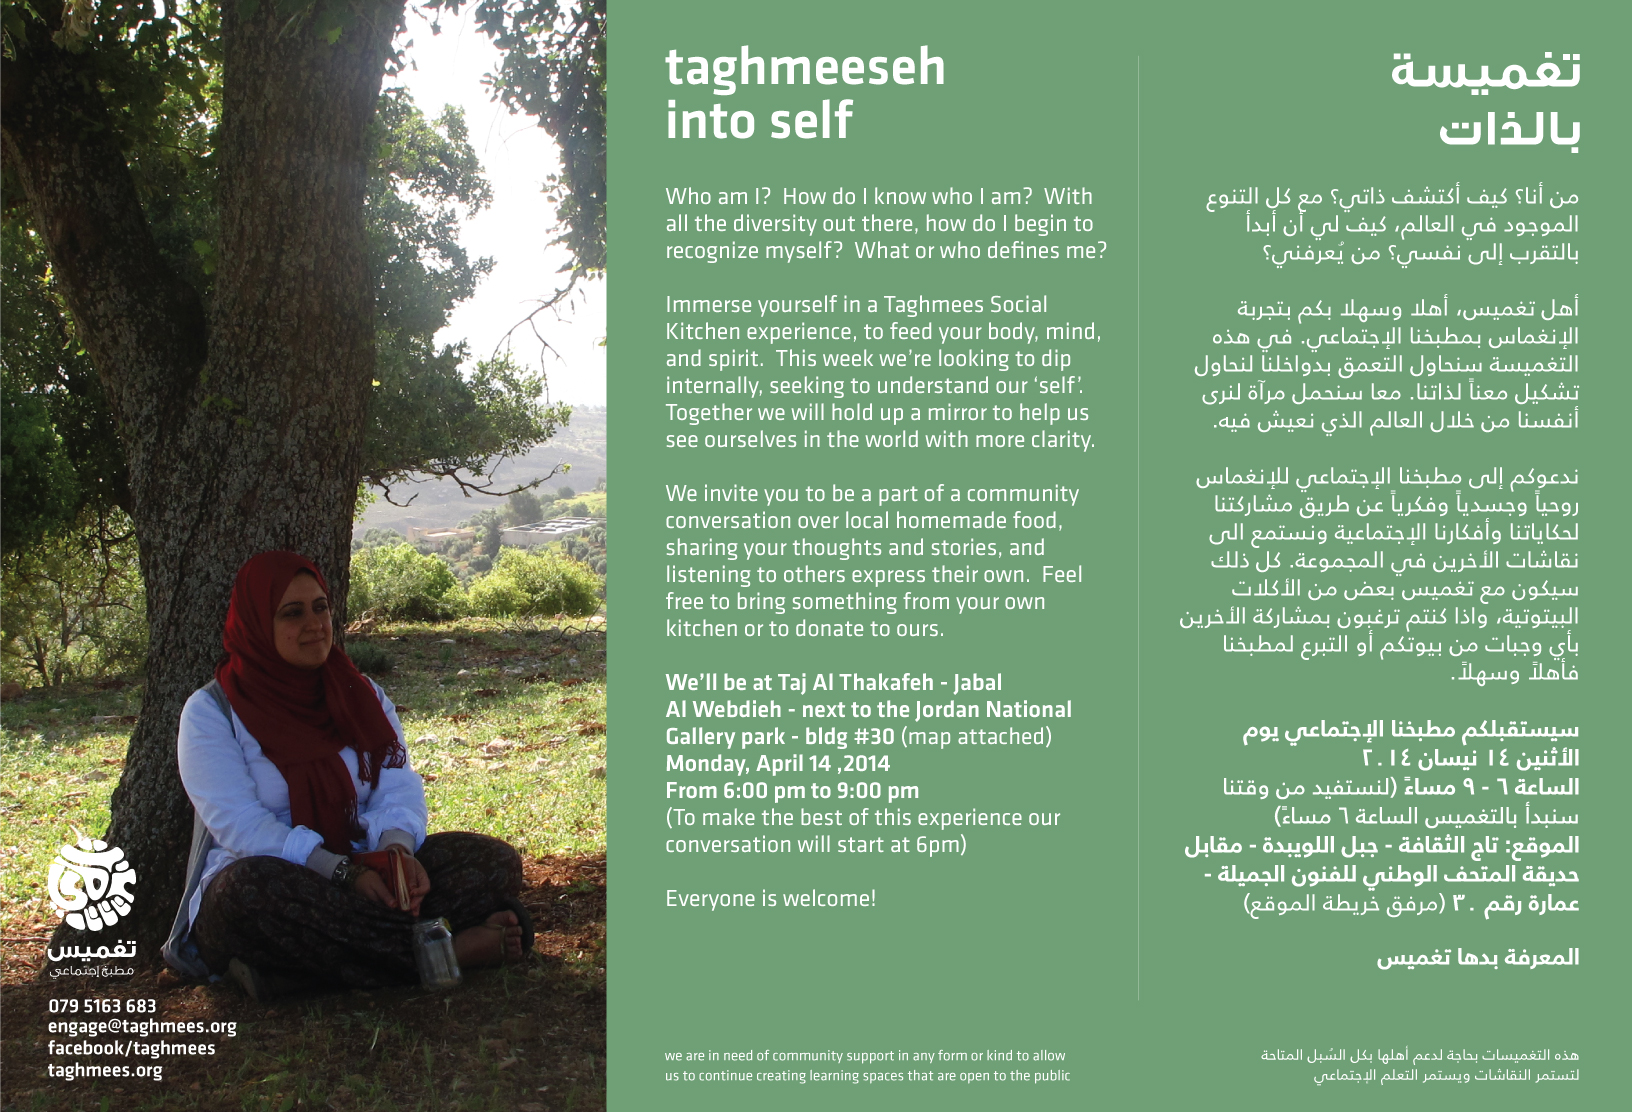 Taghmeeseh-into-self-14.4.2014